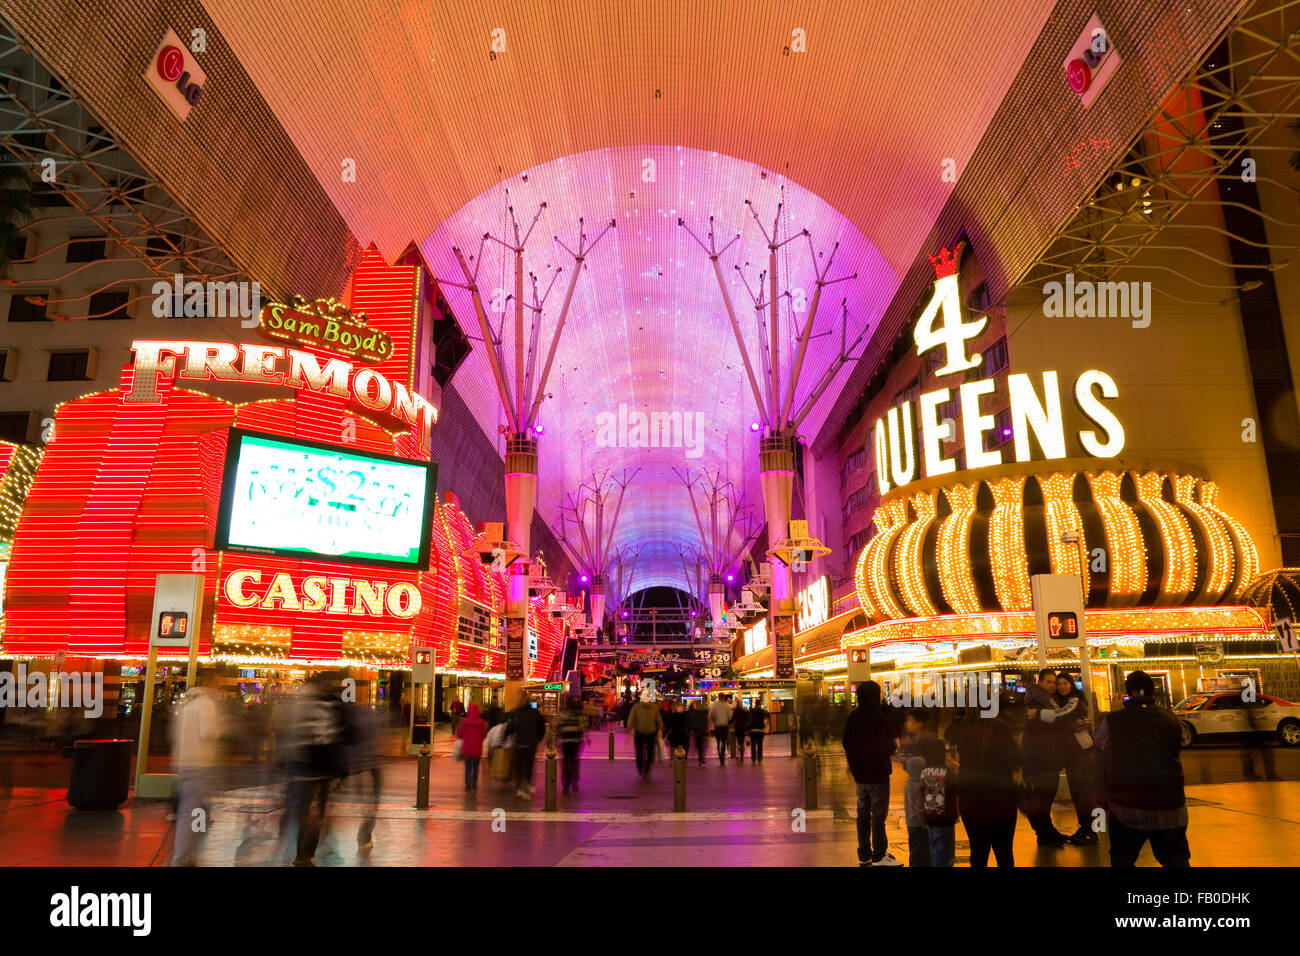 Las Vegas at night - Stock Image